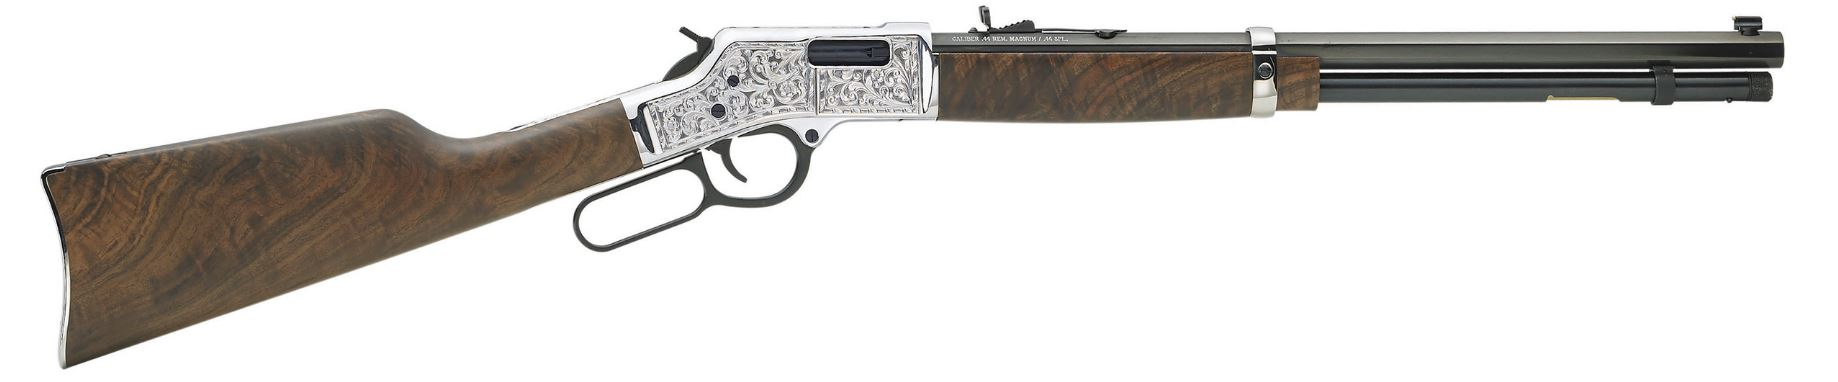 Henry Repeating Arms Big Boy Silver Deluxe Engraved 44 Magnum   44 Special